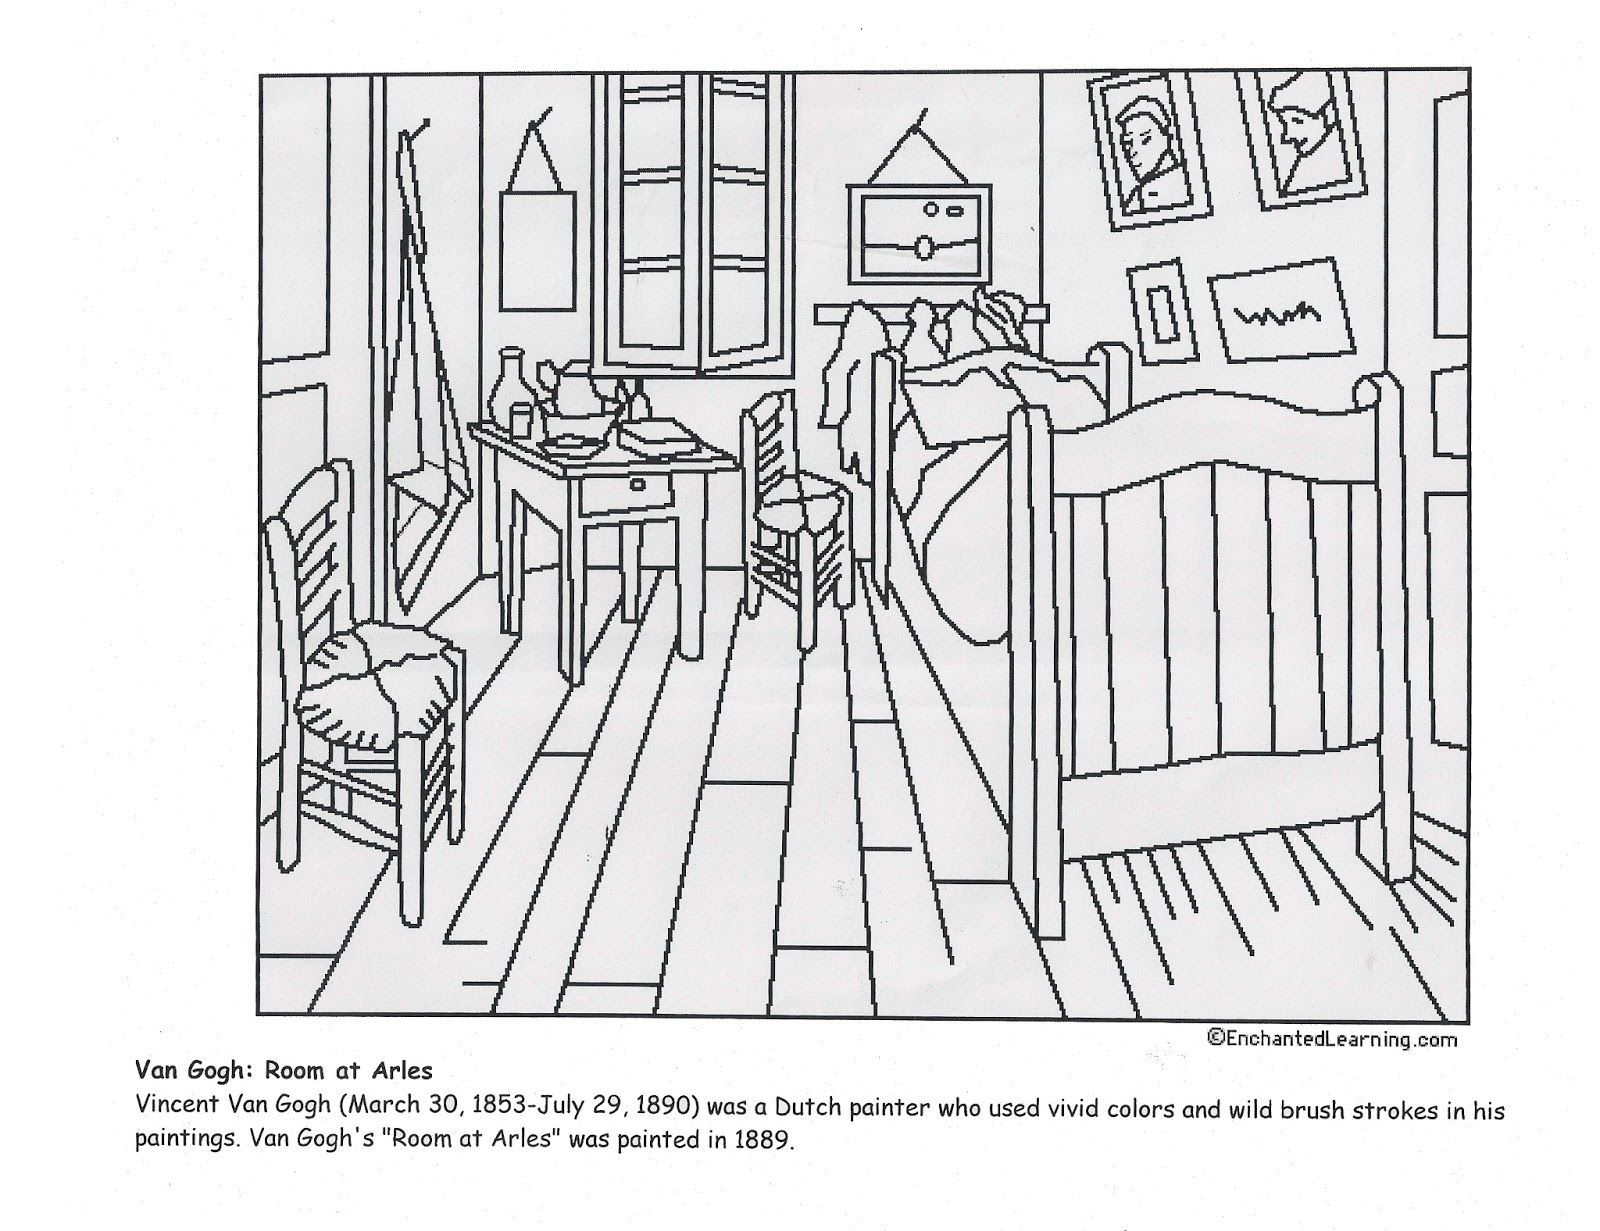 Vincent Van Gogh S Bedroom At Arles Coloring Page With